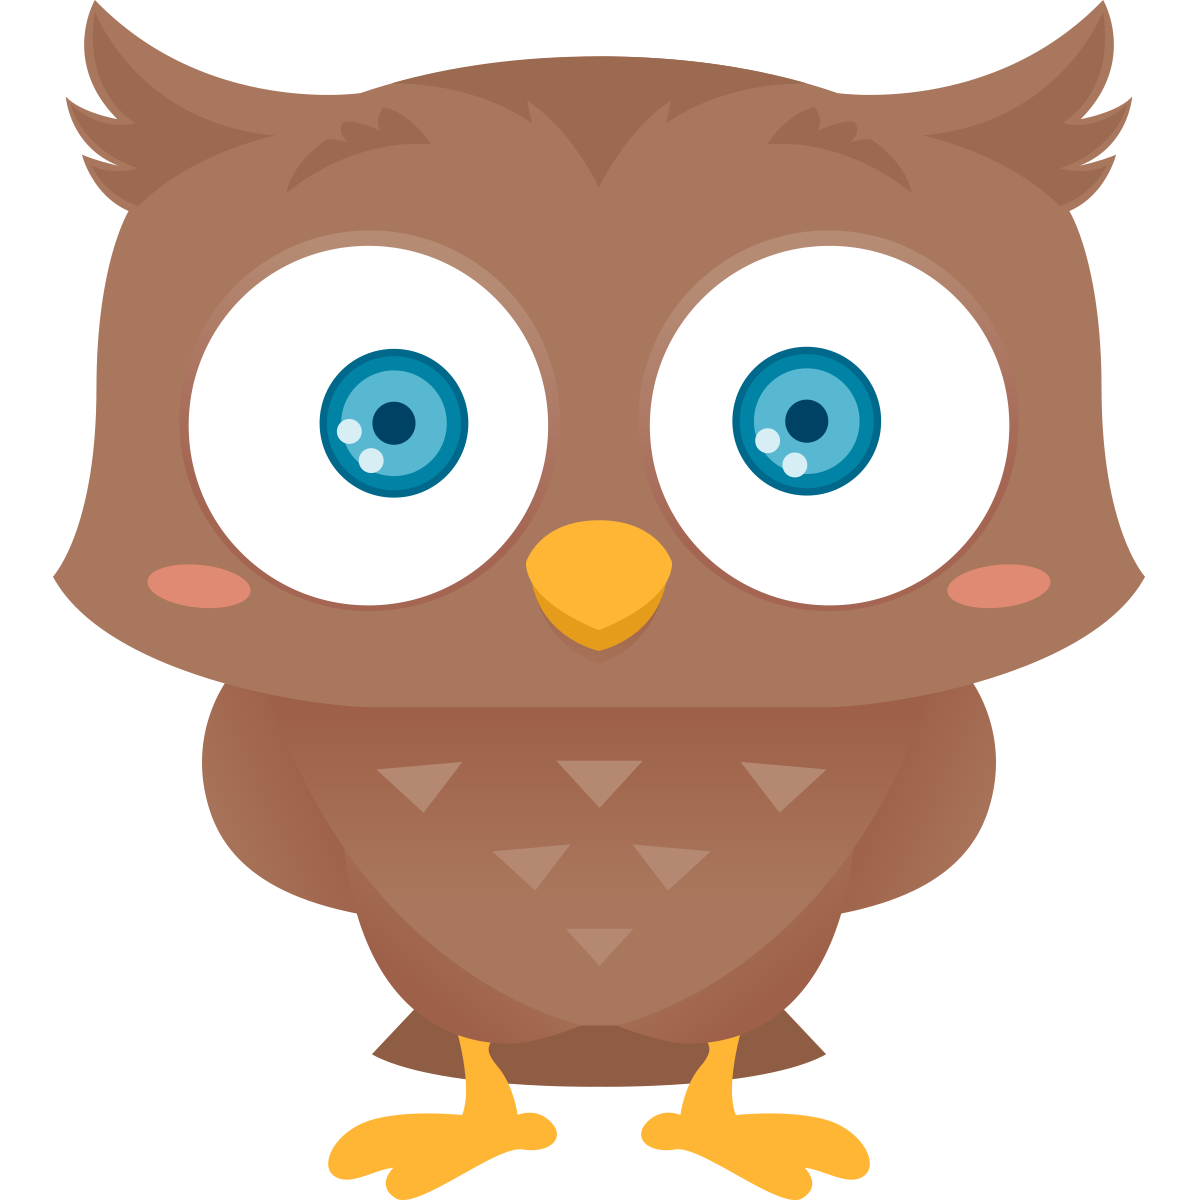 owl clipart at getdrawings com free for personal use owl clipart rh getdrawings com cute owl clipart images cute owl borders clip art